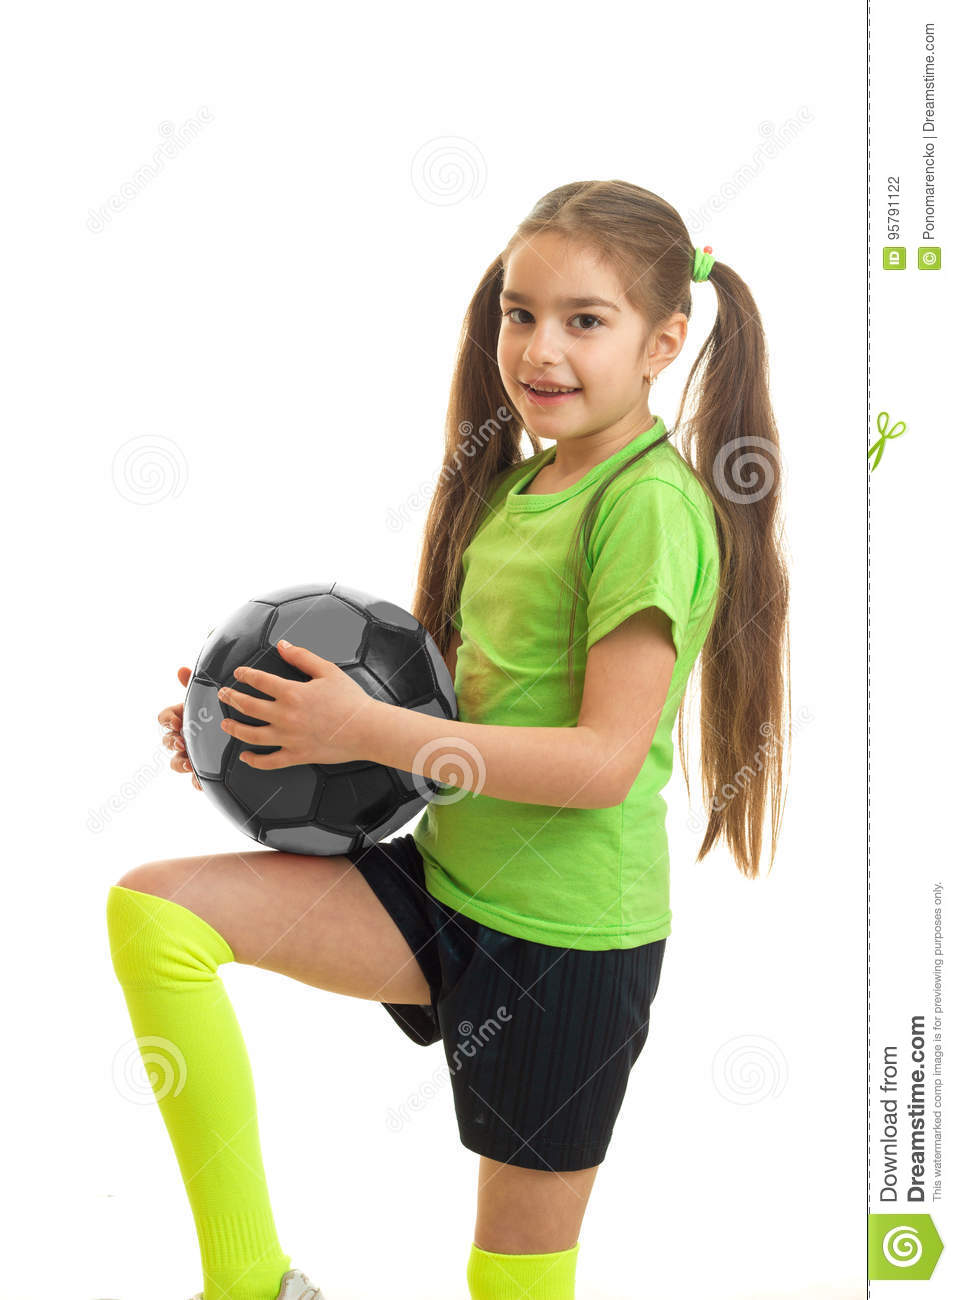 c78b702da Little Girl In Green Uniform Playing Soccer With Ball Stock Photo ...